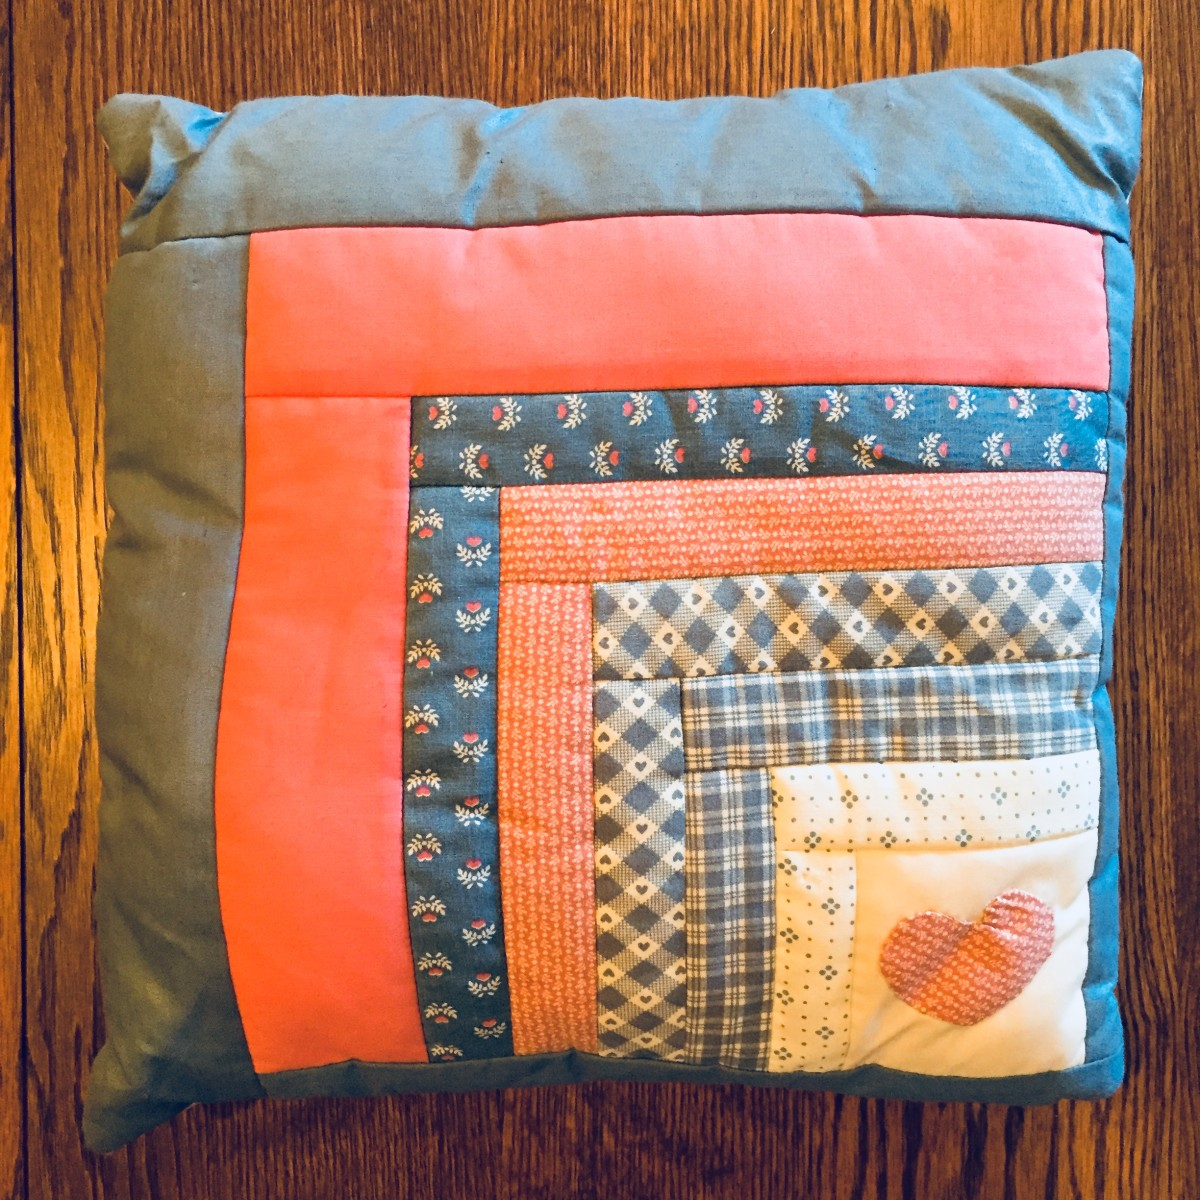 How to Make a Log Cabin Square for a Pillow or Quilt Block